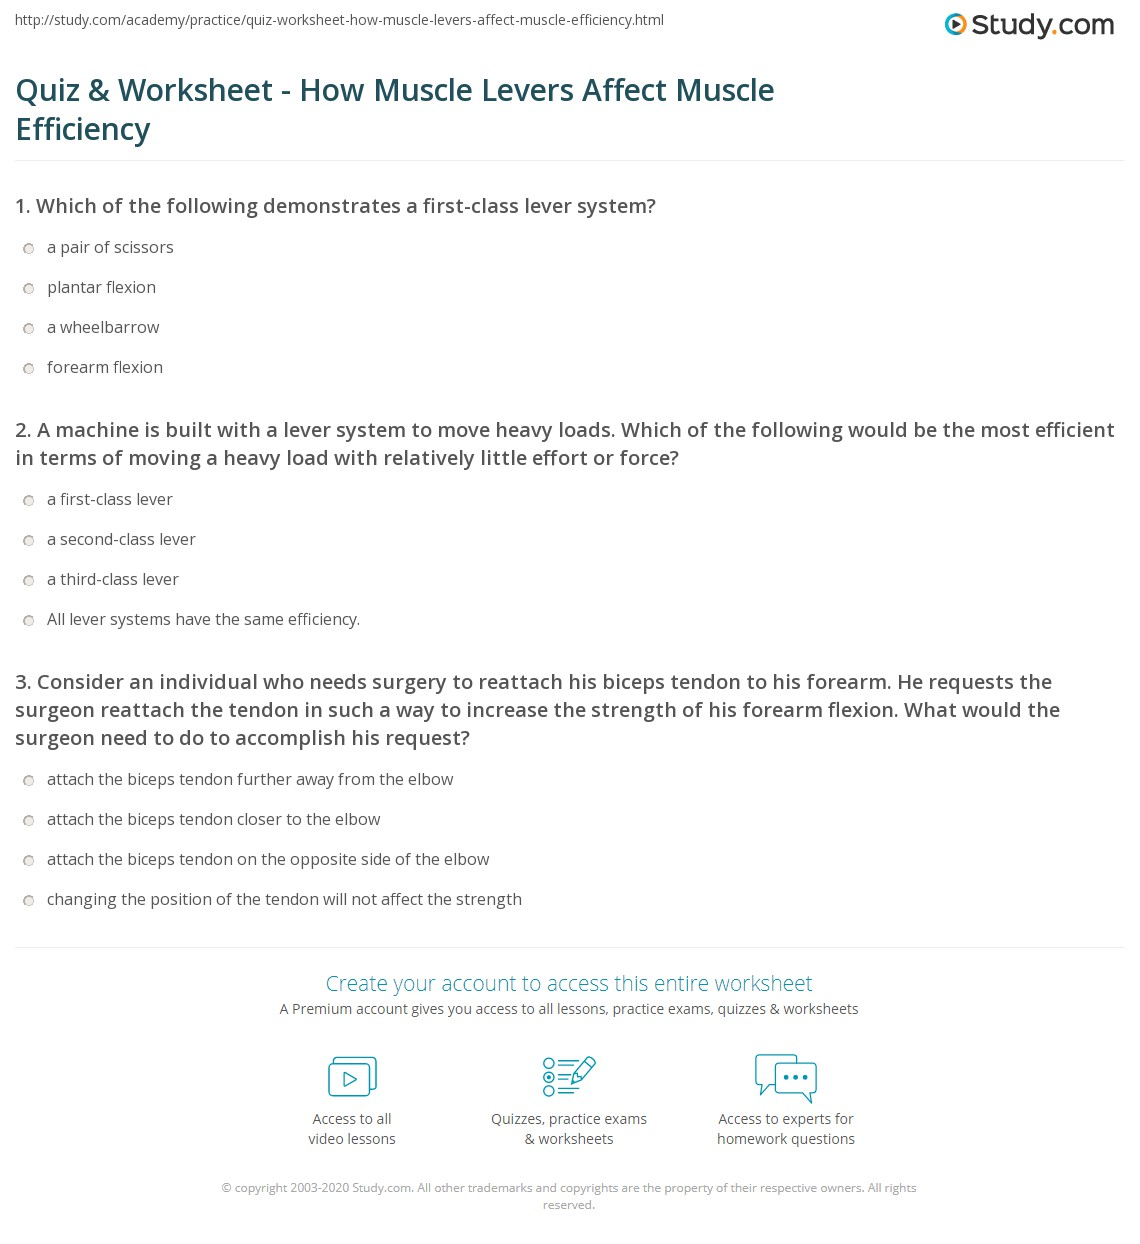 Quiz Worksheet How Muscle Levers Affect Muscle Efficiency